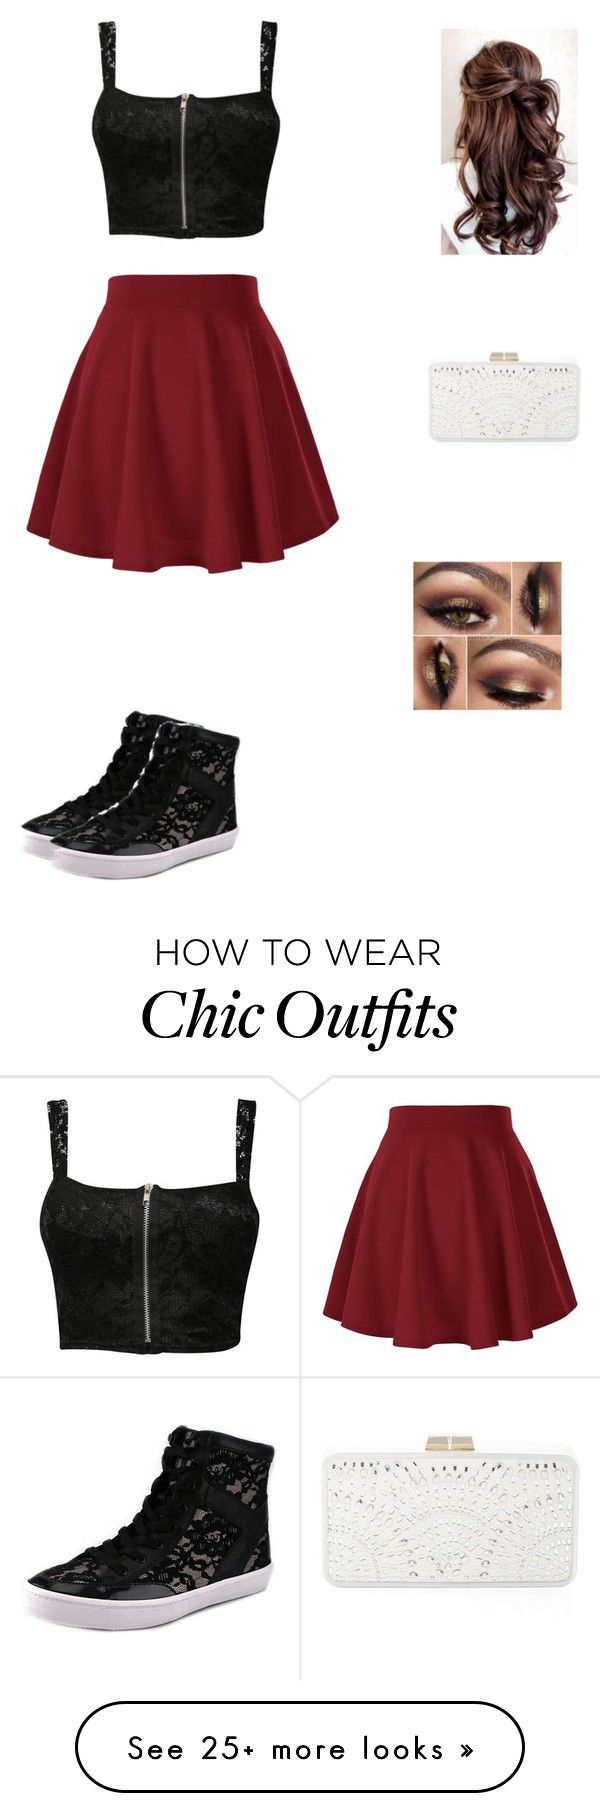 """chic skater"" by invisiblexlight on Polyvore featuring Pilot, Rebecca Minkoff and BCBGMAXAZRIA"